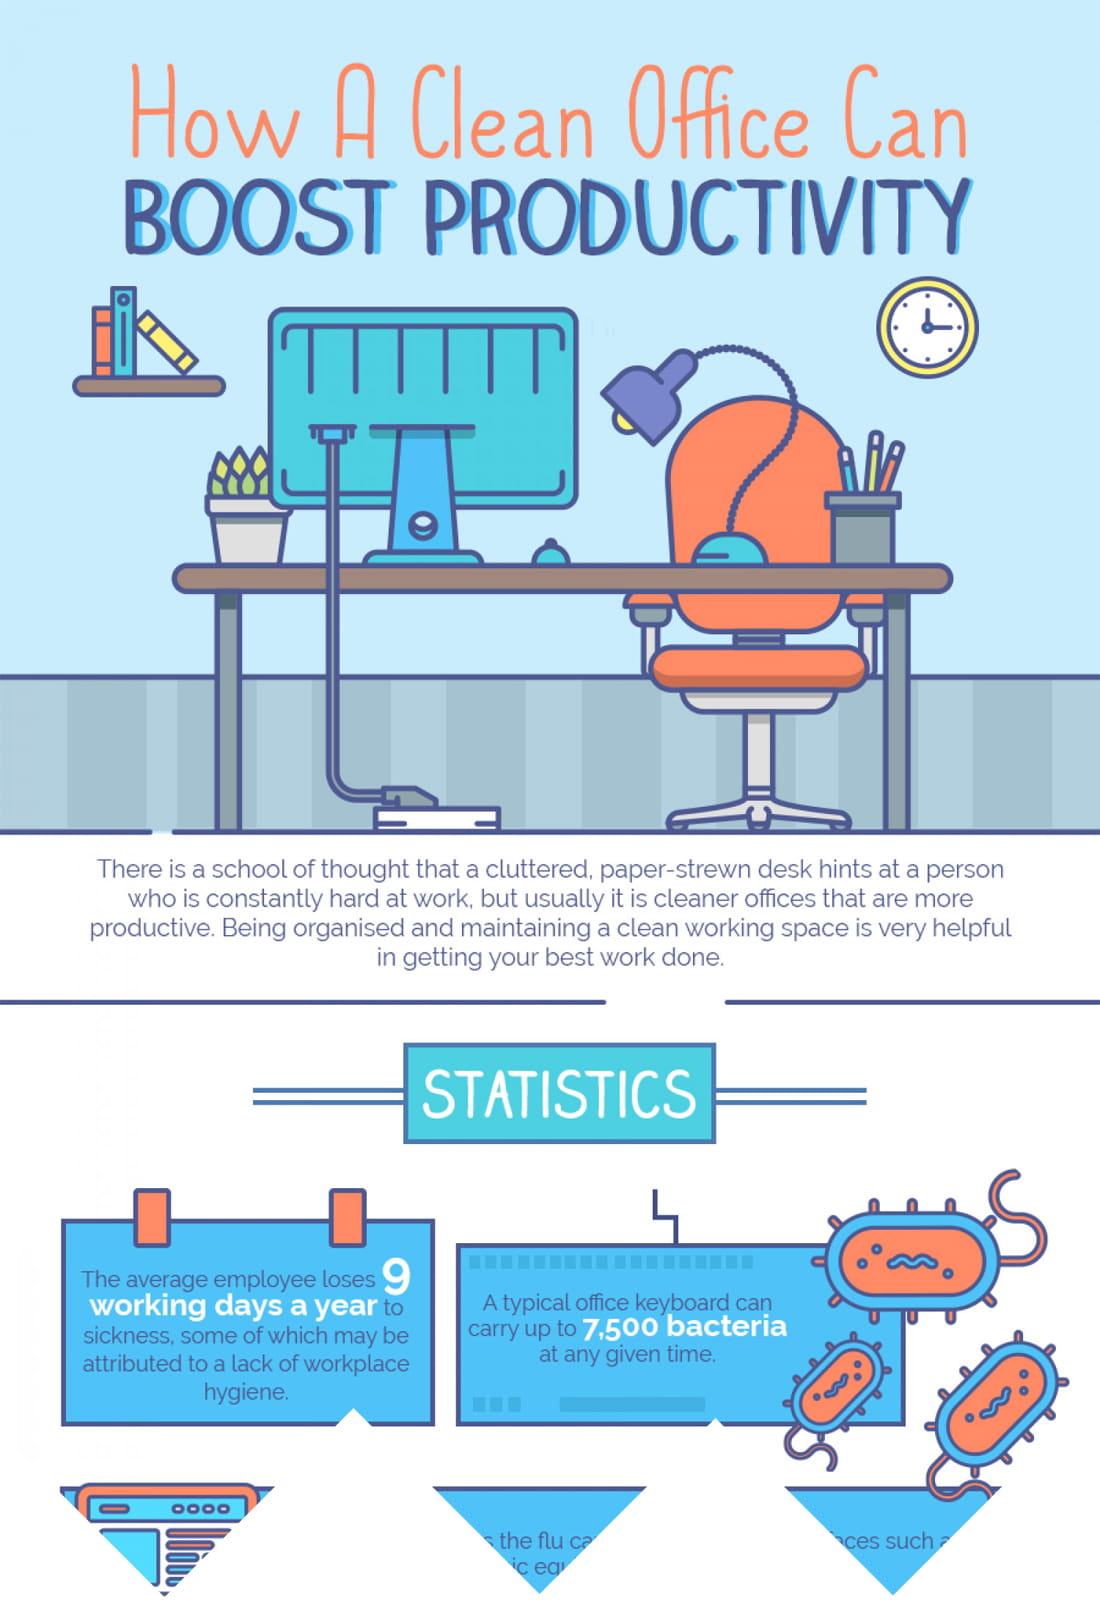 clean-office-productivity-infographic.jp